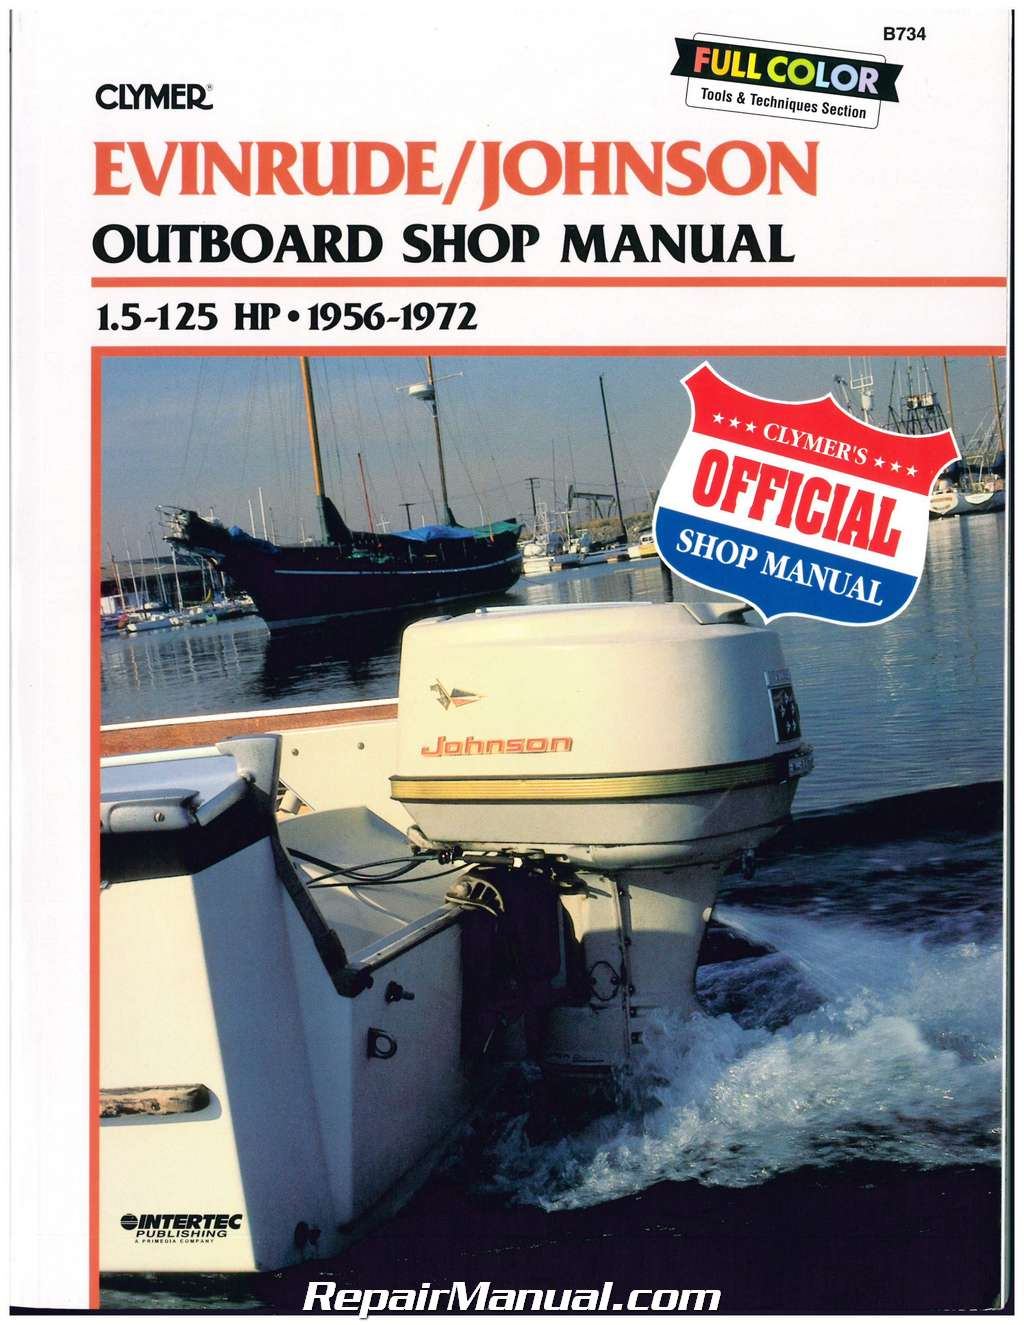 Switch Wiring Diagram Furthermore 1972 Evinrude 100 Hp Wiring Diagram